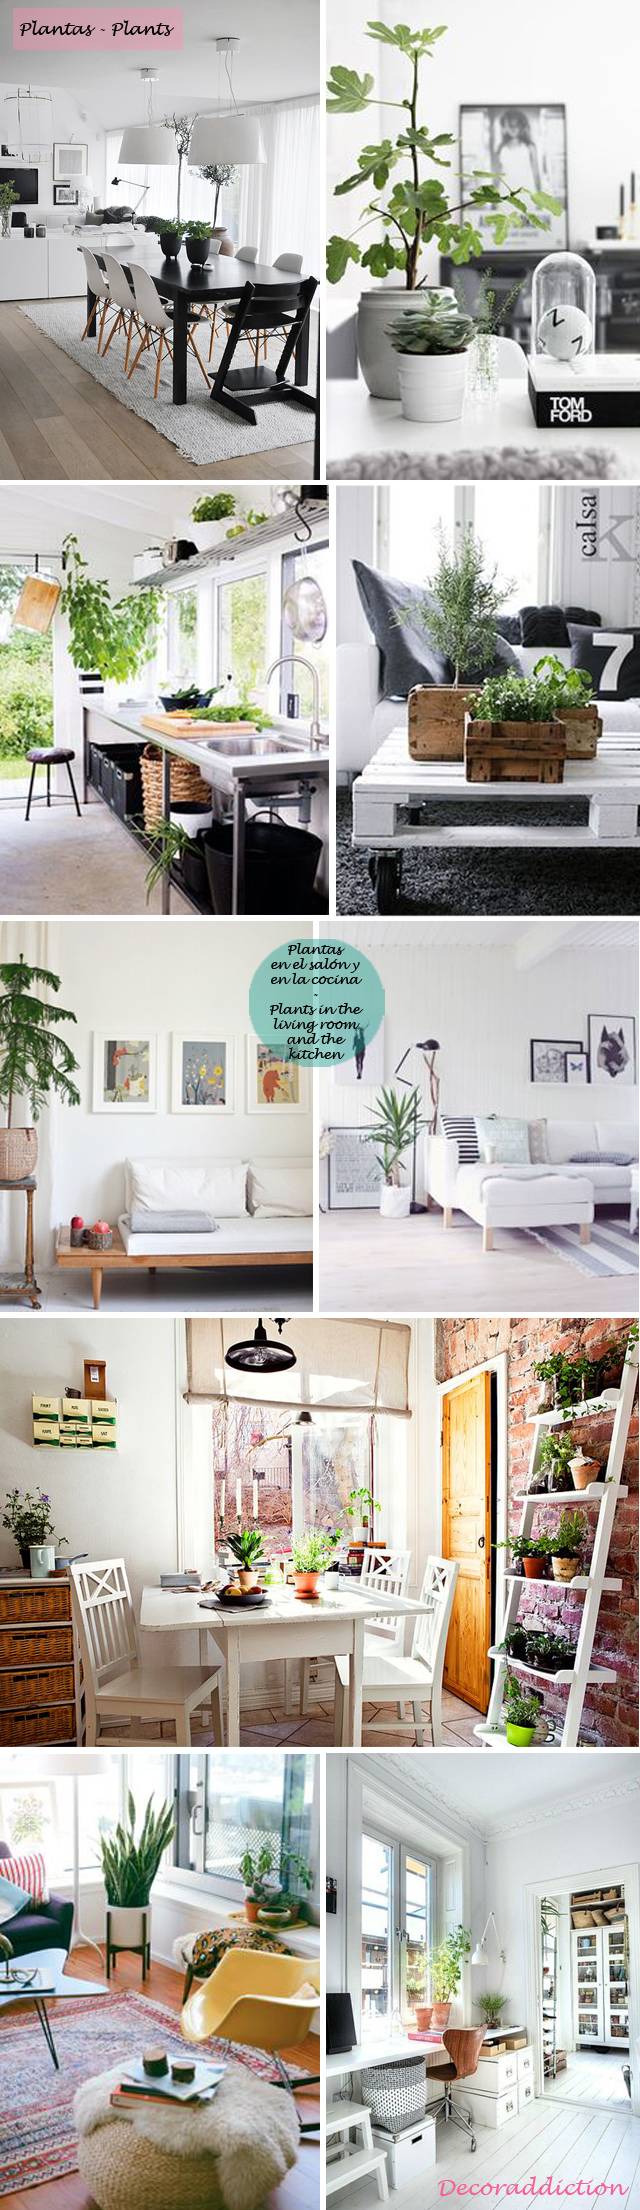 Deja que el verde entre en tu casa - Let the green into your home_plantas